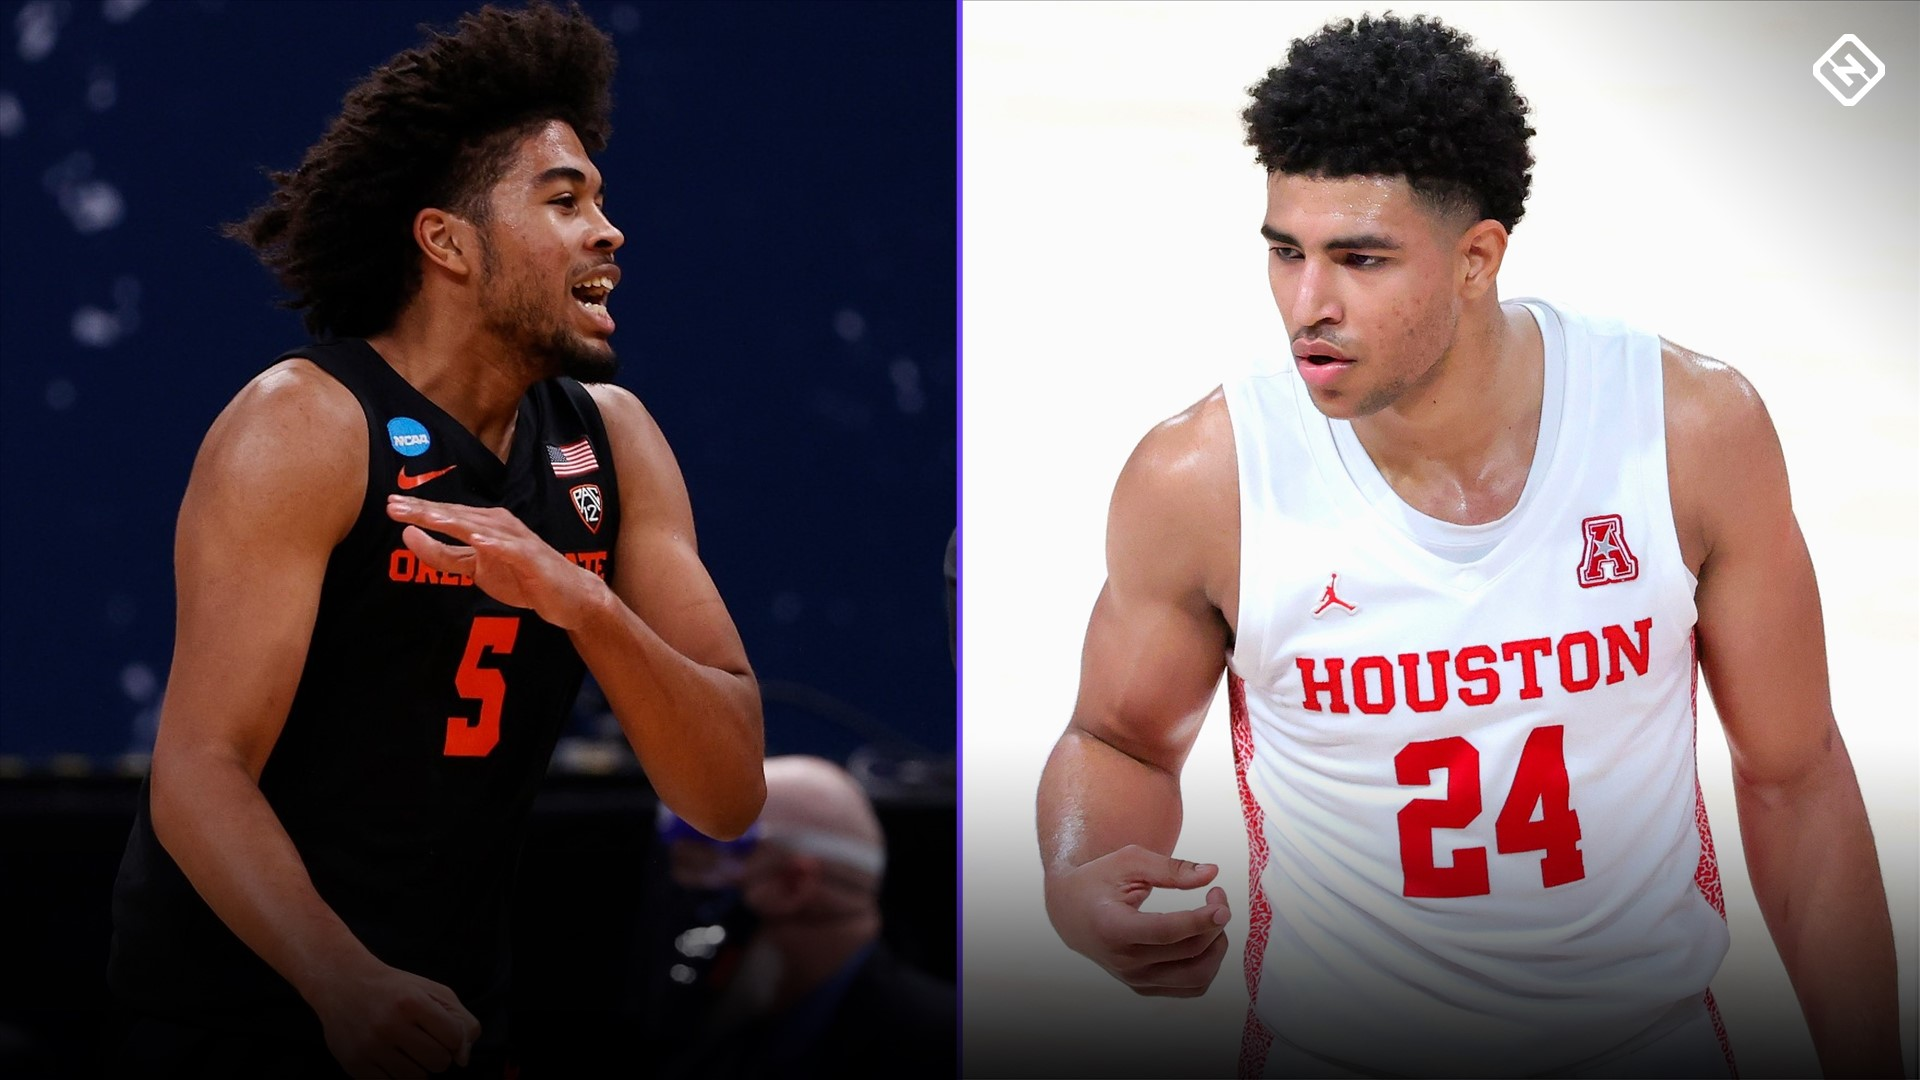 Houston vs. Oregon State odds, picks, predictions for March Madness Elite Eight game